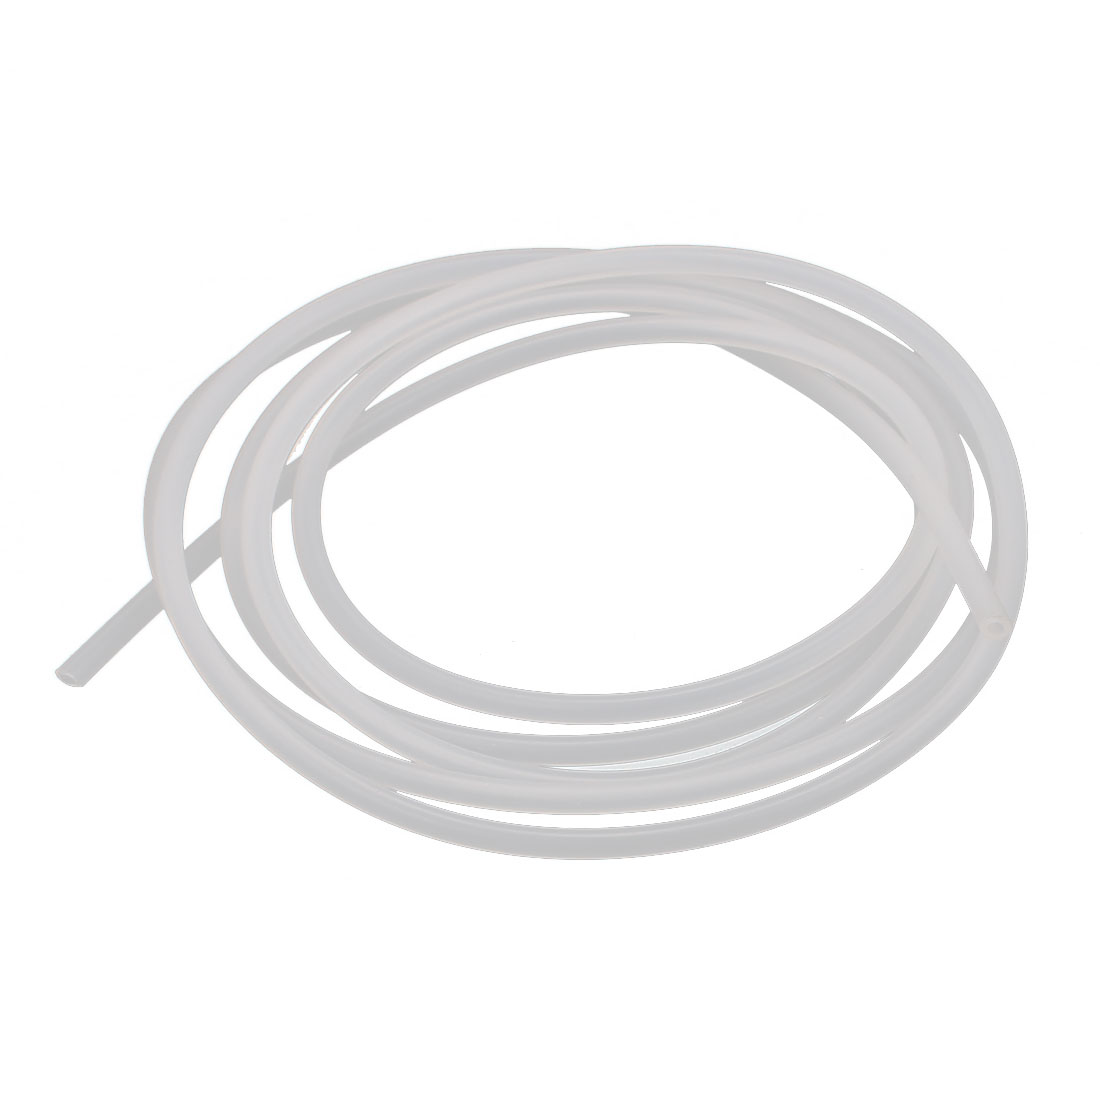 1mm x 2mm Beige Silicone Tube Water Air Pump Hose Pipe 1M Length